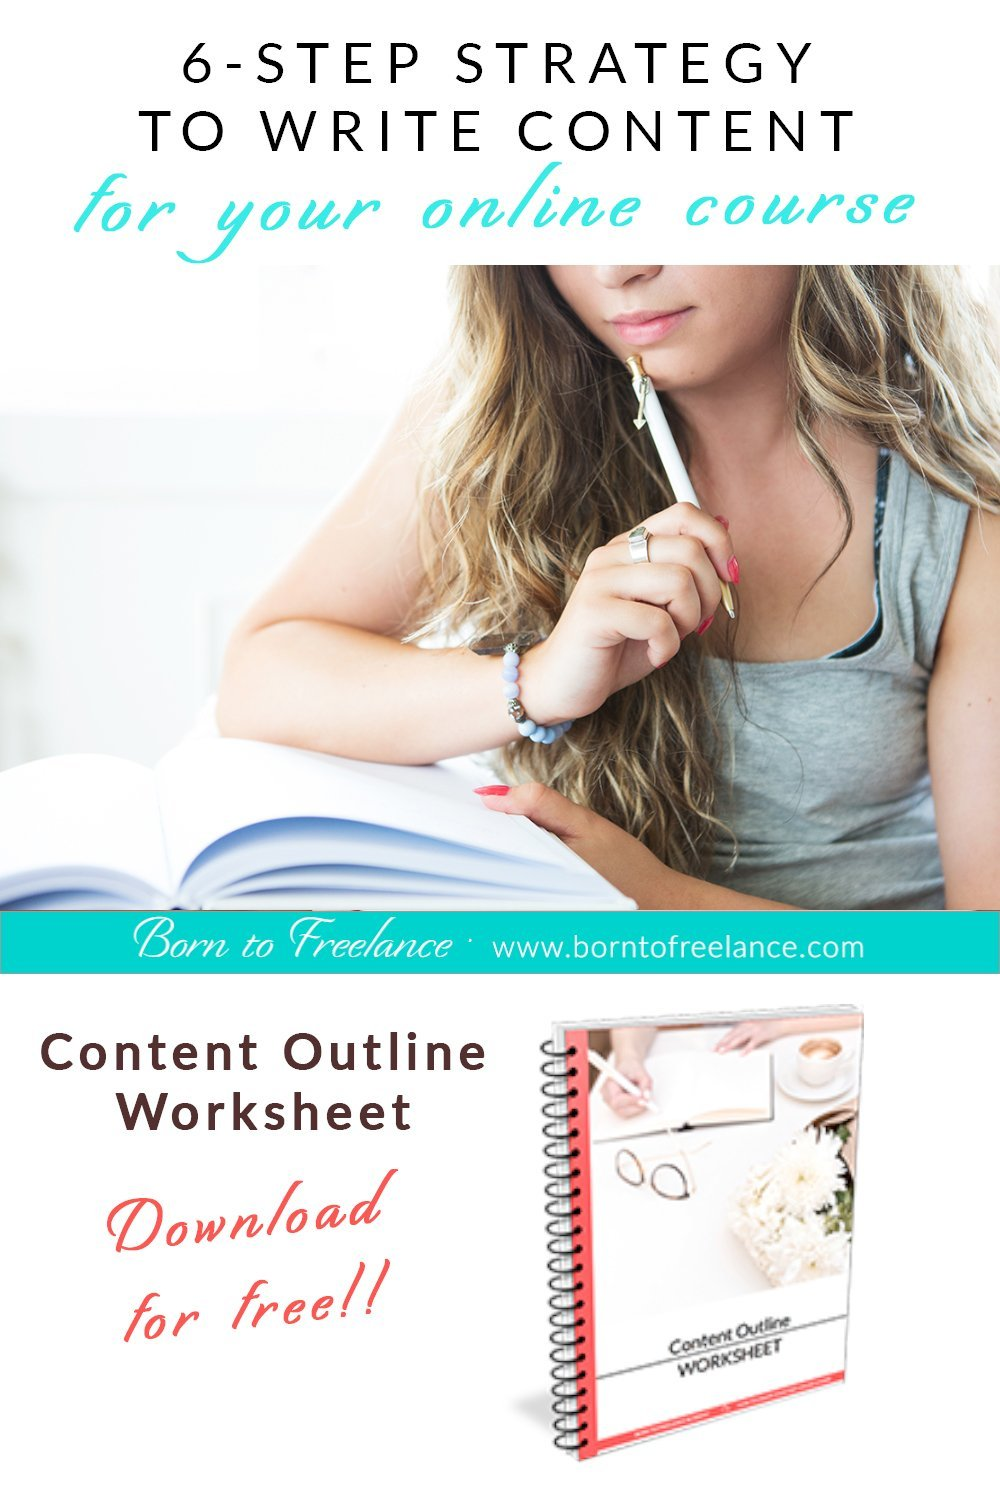 Start Writing Online Content